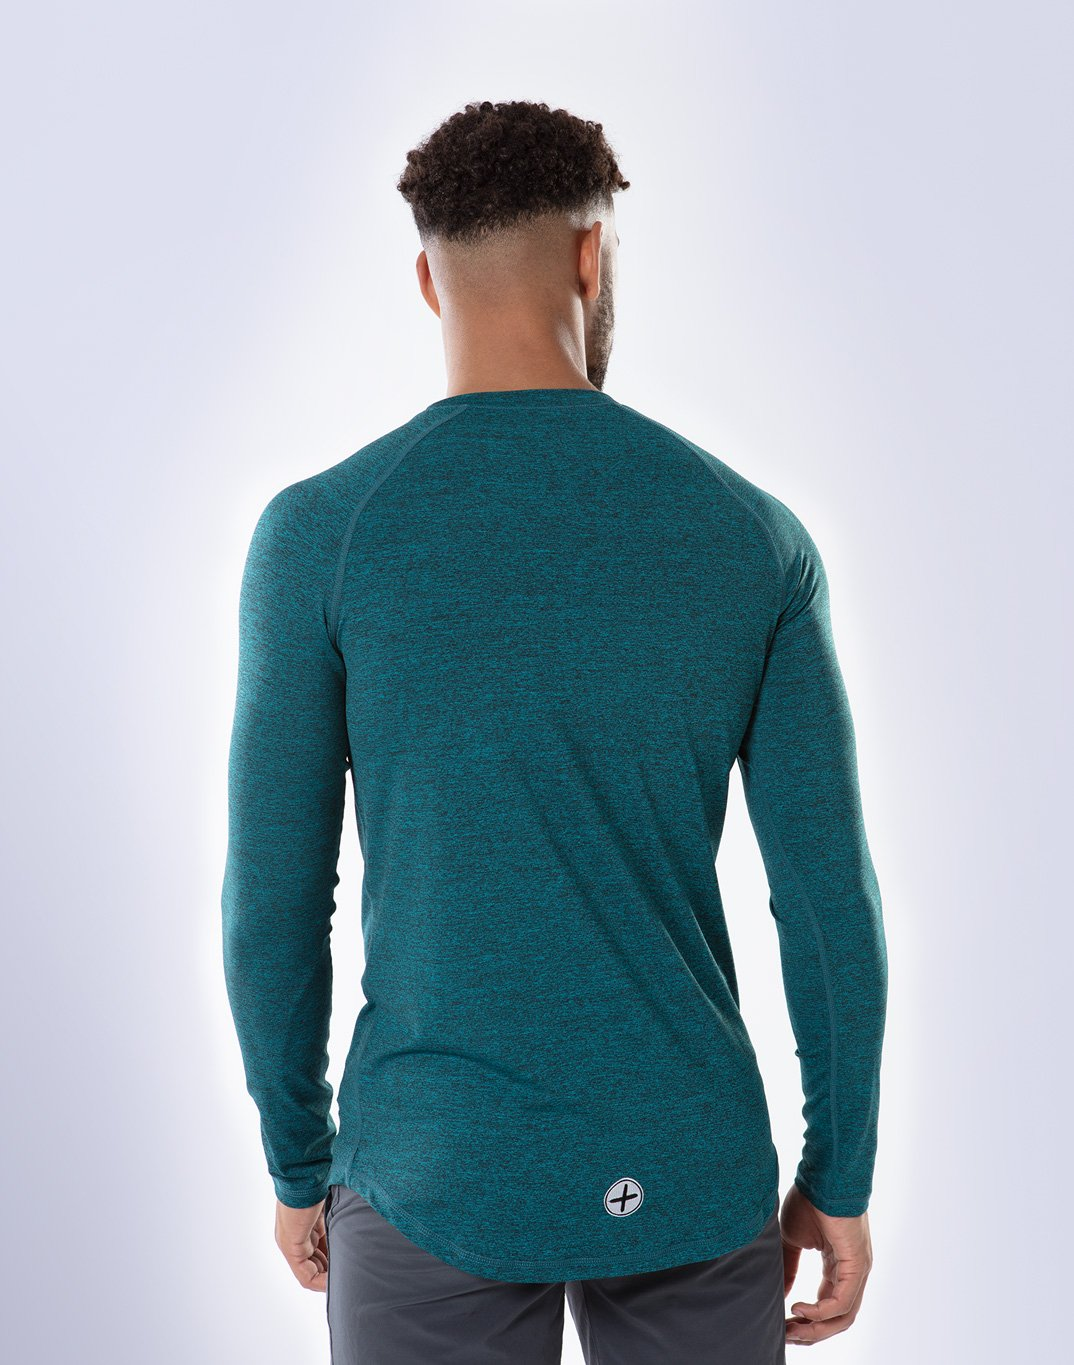 Gym Plus Coffee Long Sleeve Raglan Tech Long Sleeve in Teal Designed in Ireland